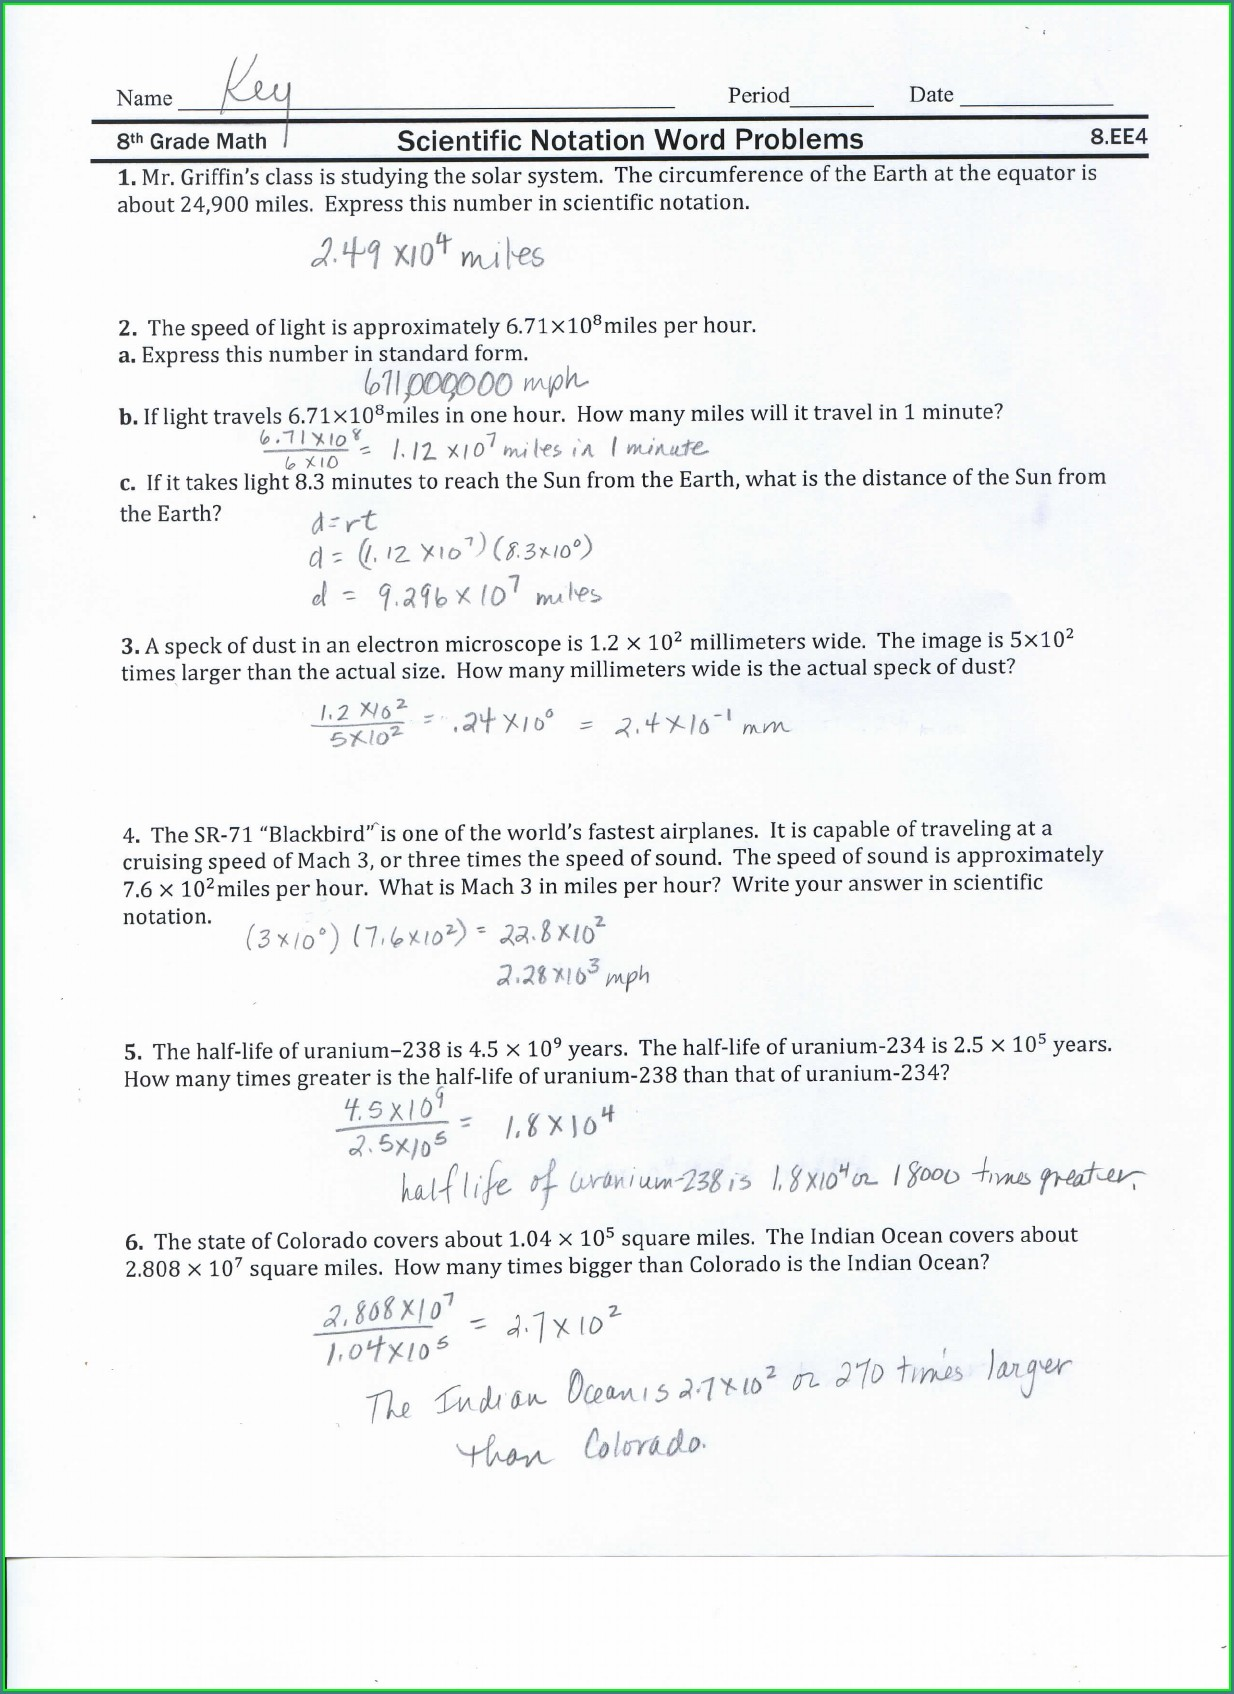 Function Notation Word Problems Worksheet